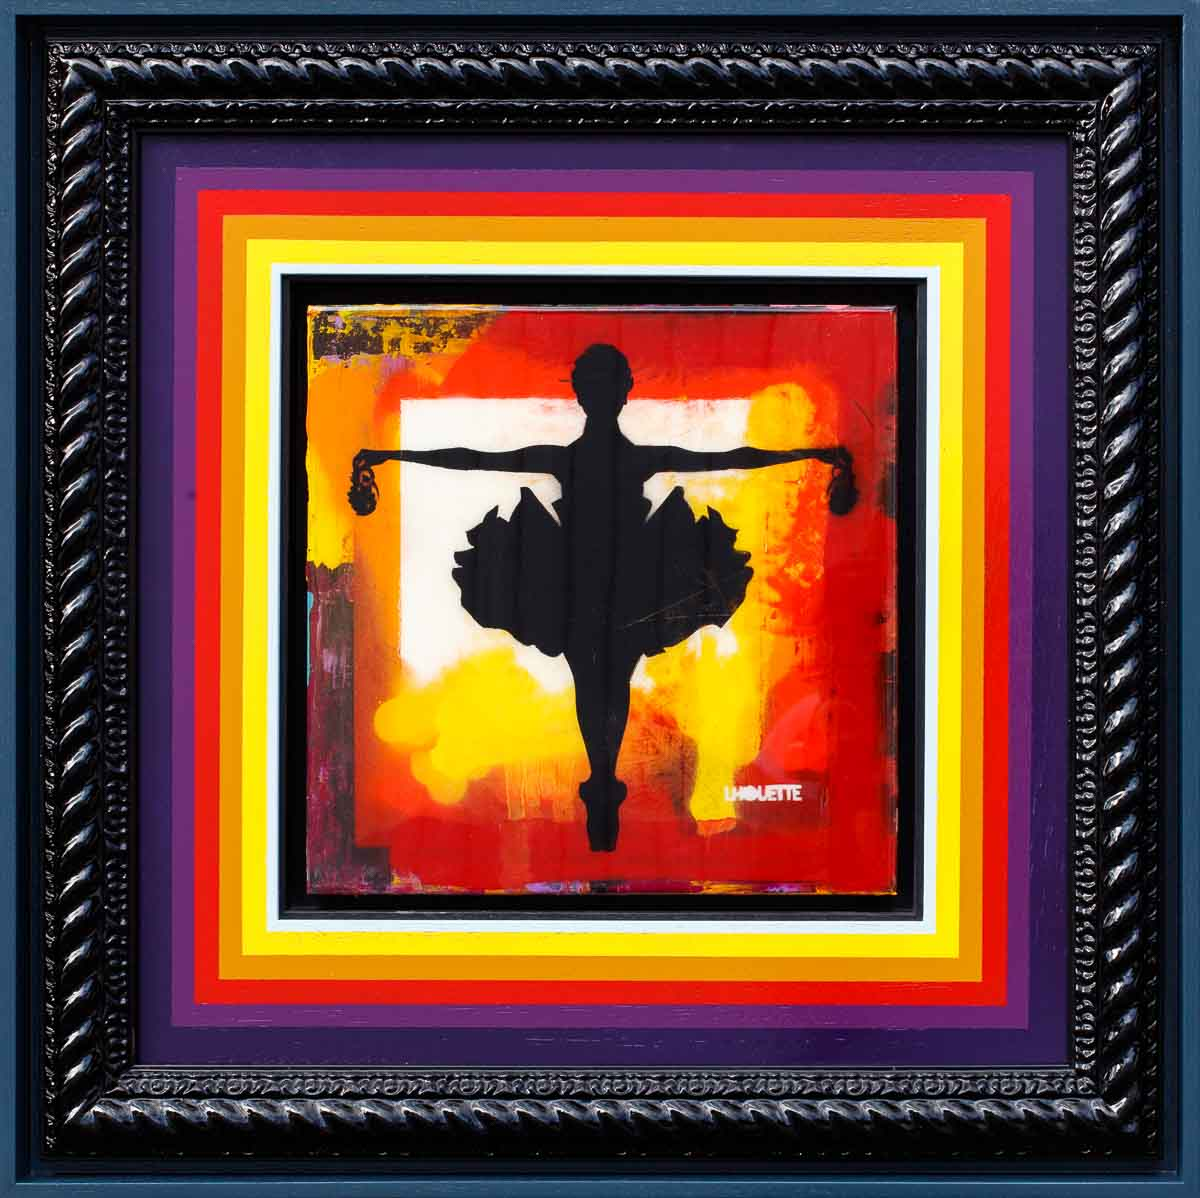 Drop The Bomb Mixer (Pure Orange) - Original Lhouette Framed